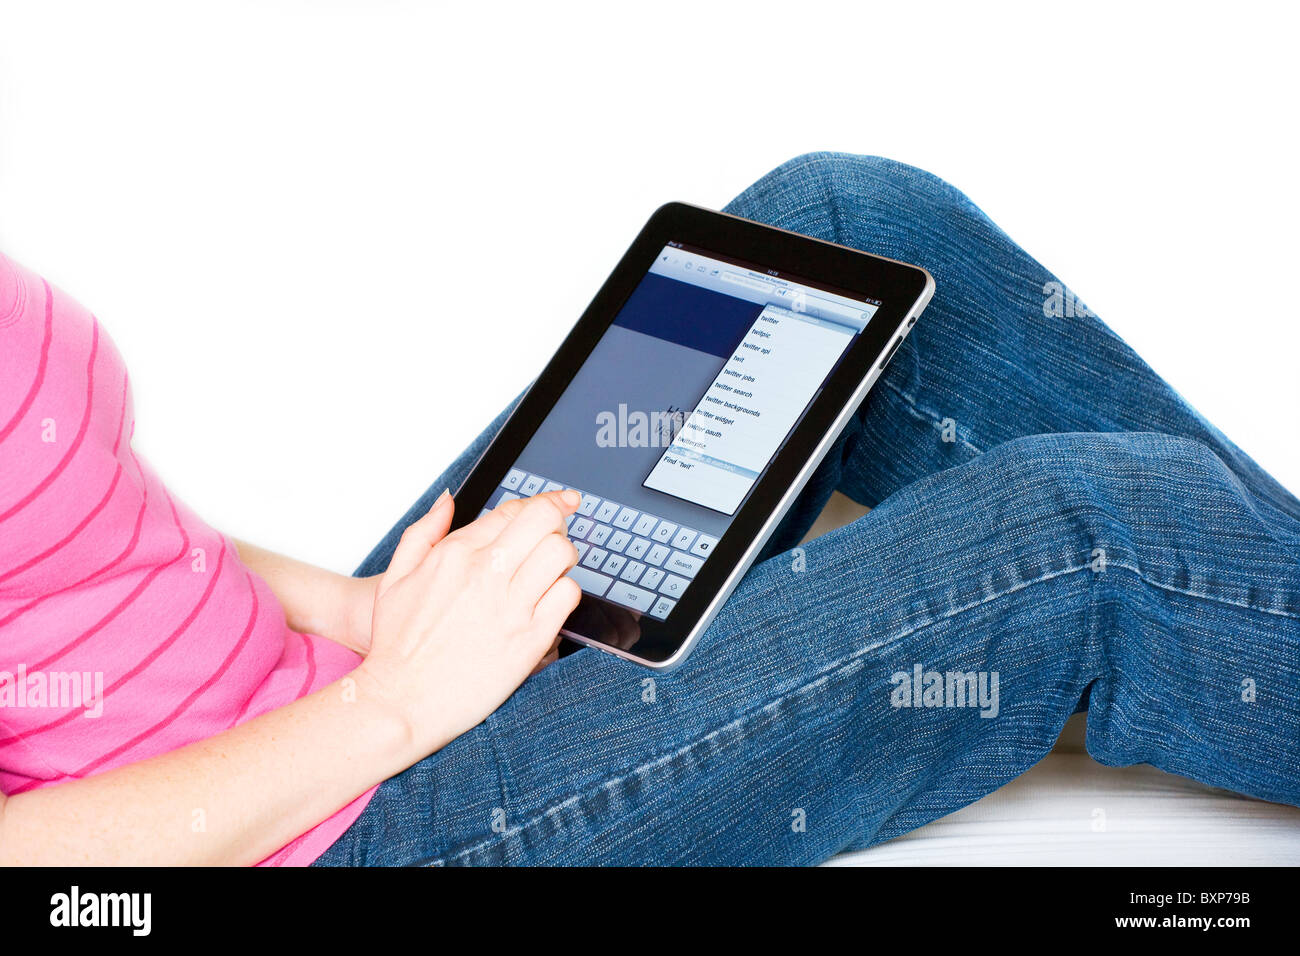 Woman relaxing using an Apple Mac iPad on her lap typing a search on the internet - Stock Image